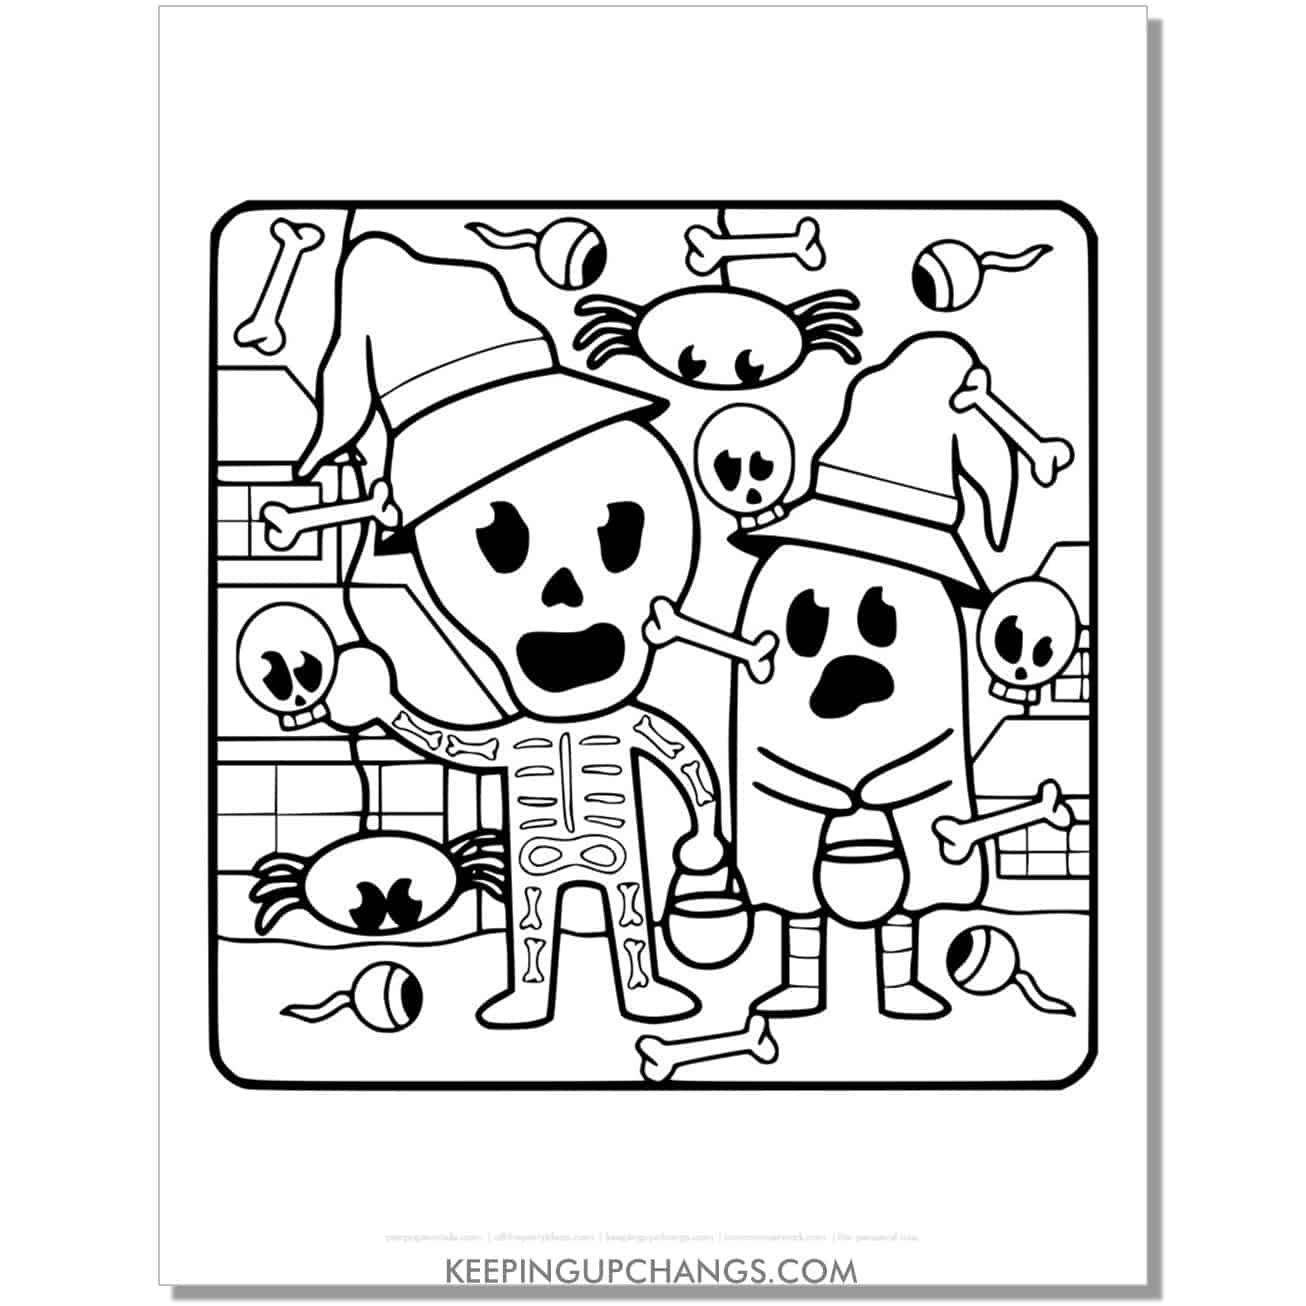 free kids in skeleton, ghost costume full size coloring page for toddlers.